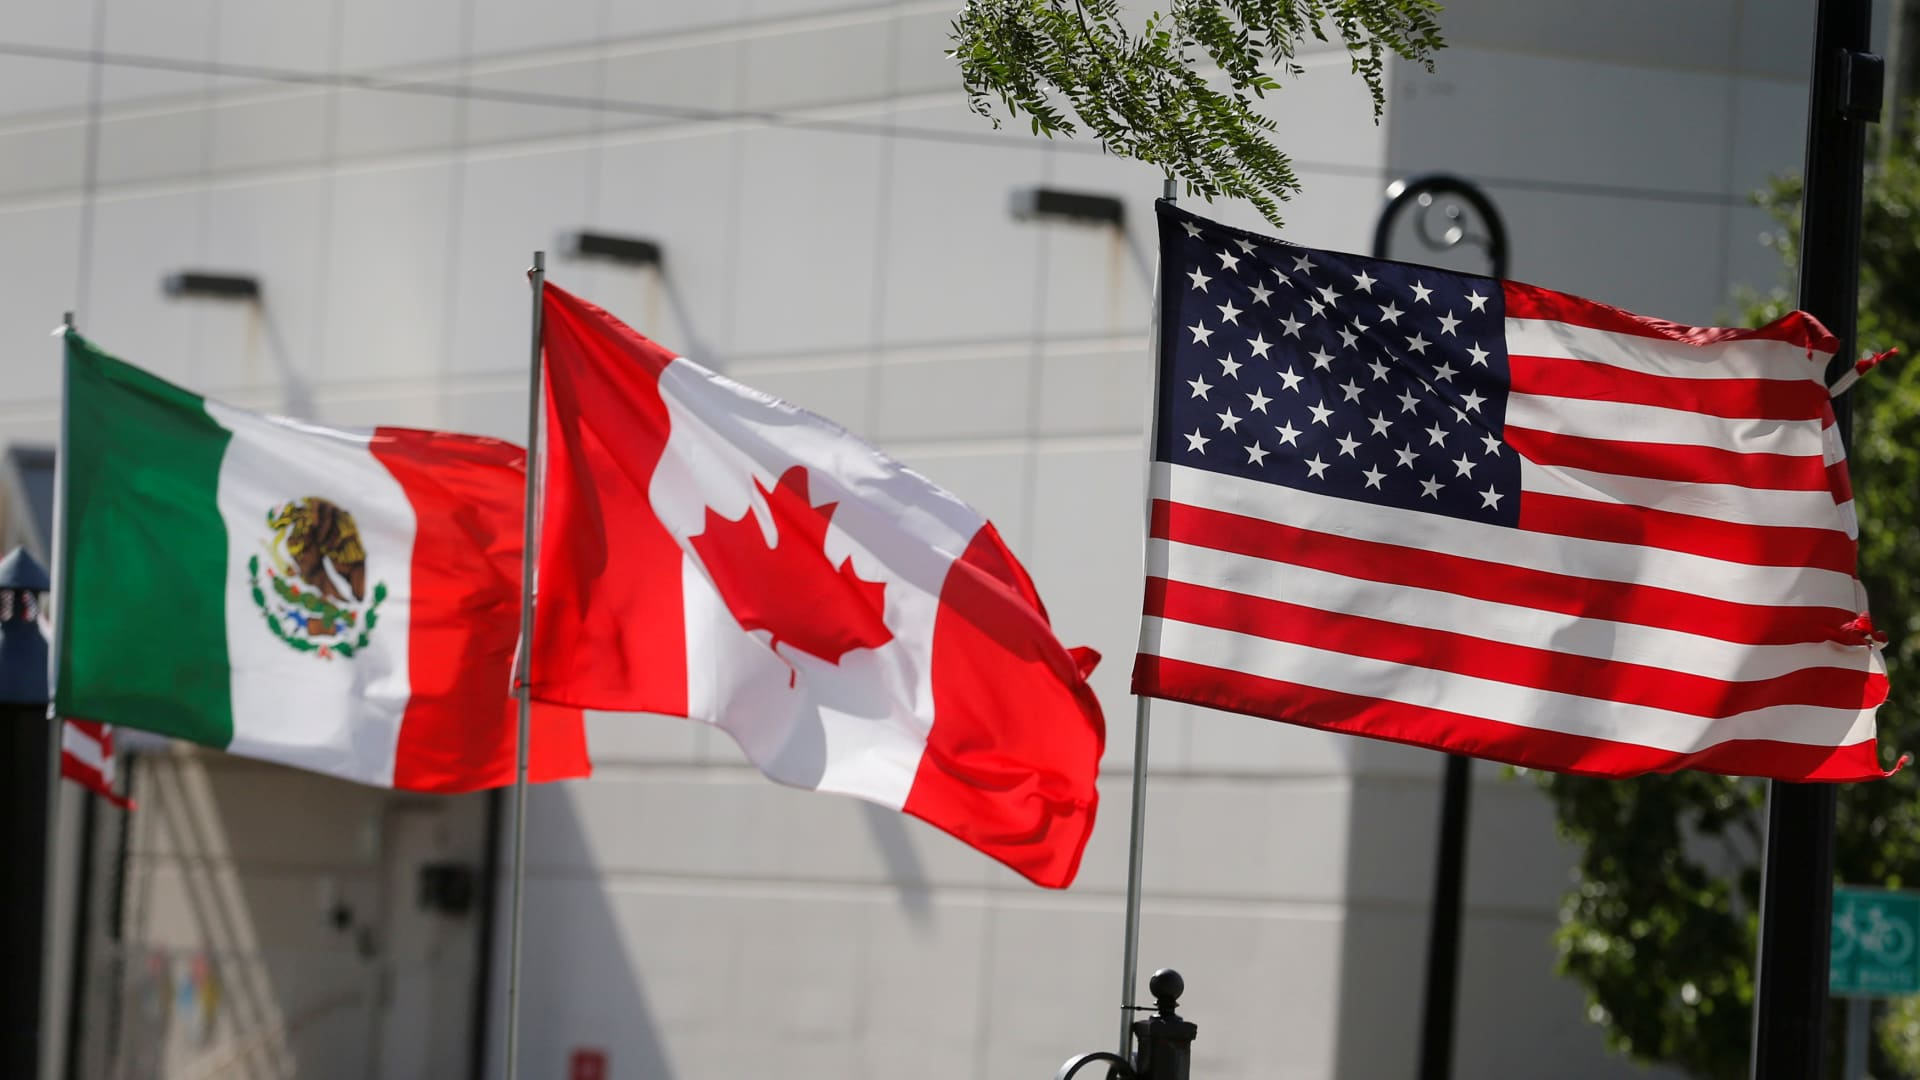 Flags of the U.S., Canada and Mexico fly next to each other in Detroit, Michigan, U.S. August 29, 2018.